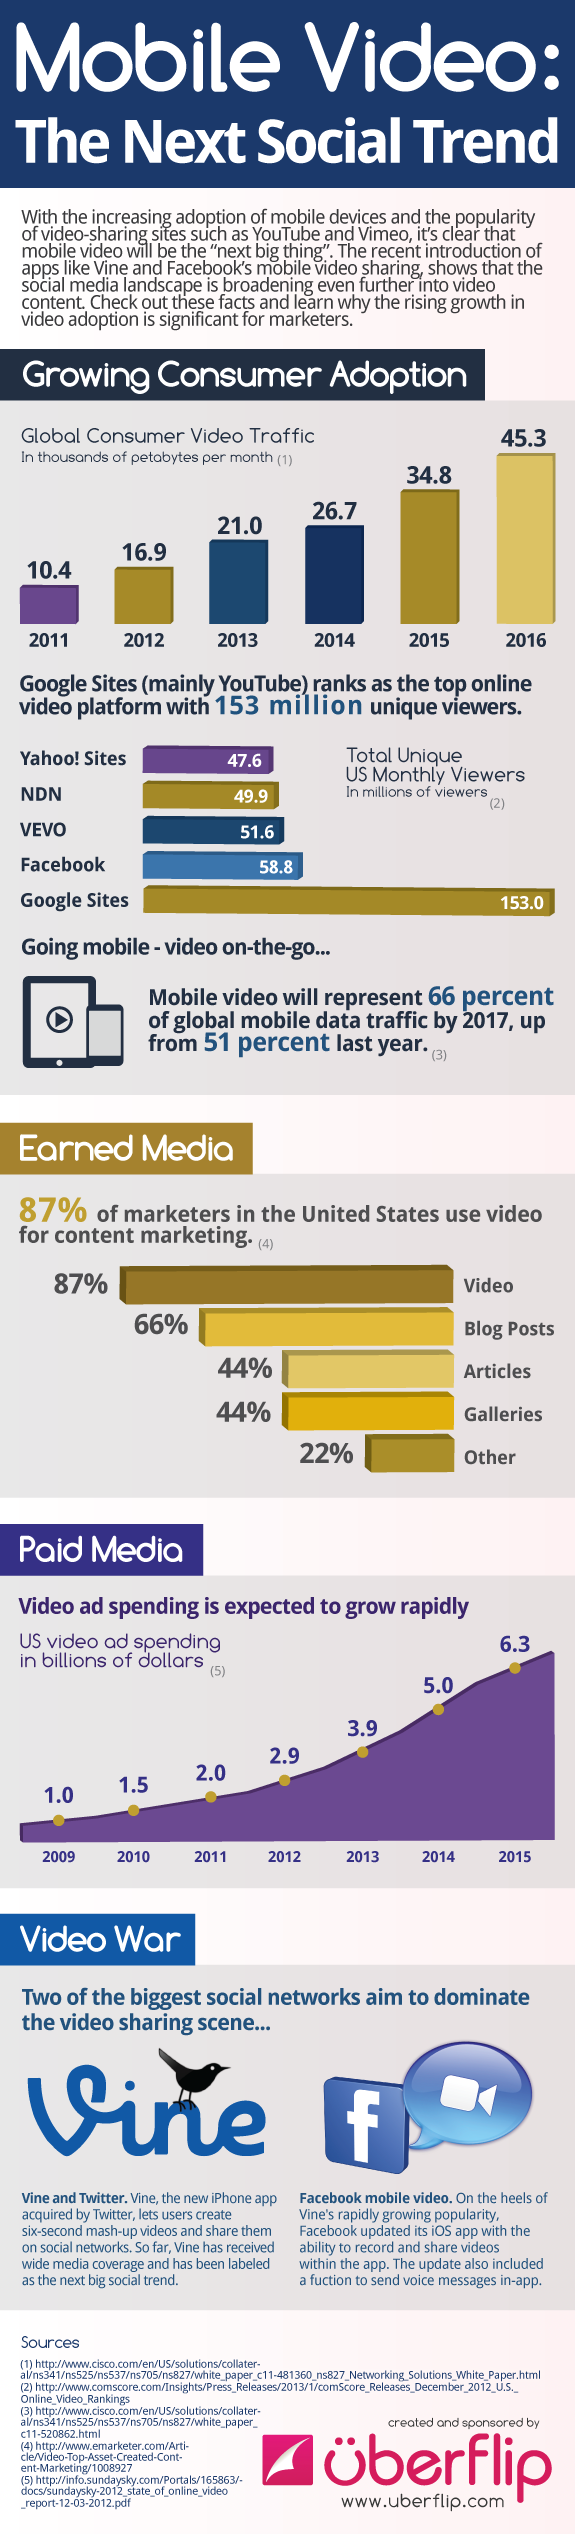 Uberflip's latest infographic provides insightful facts and figures about the growth of video, its consumption on mobile devices, as well as what these numbers represent for marketers.